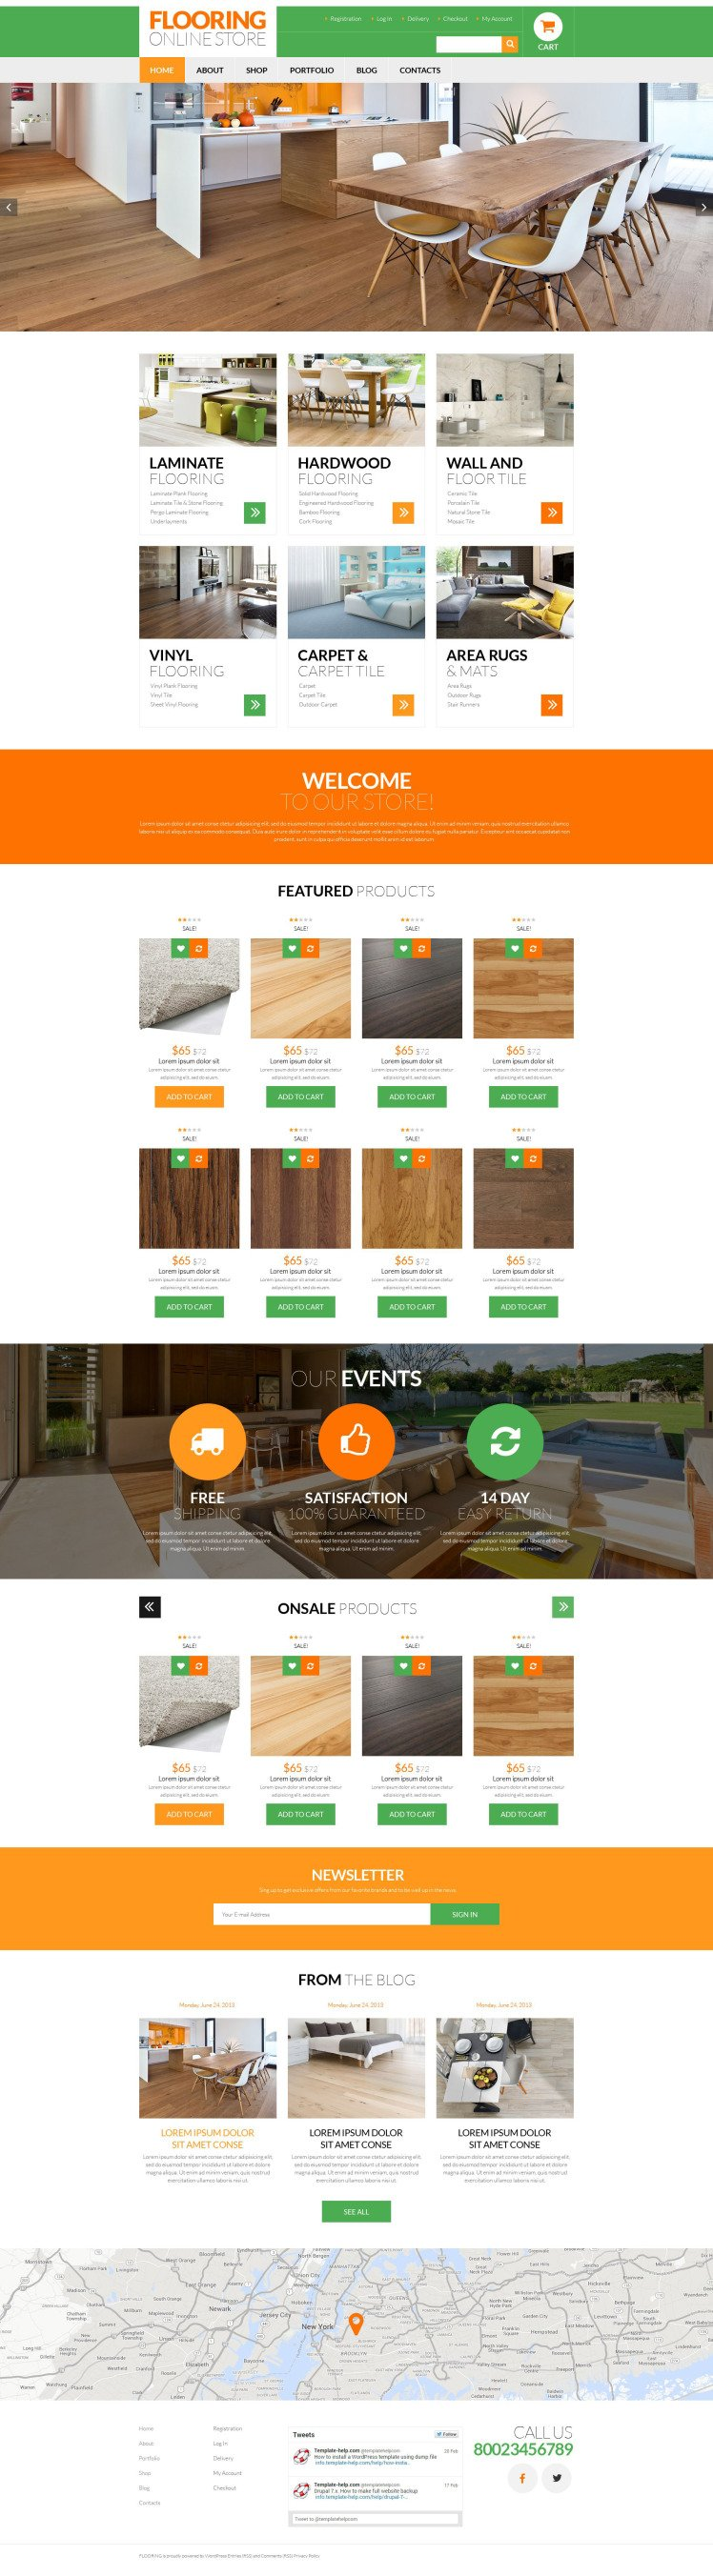 Flooring Services WooCommerce Themes